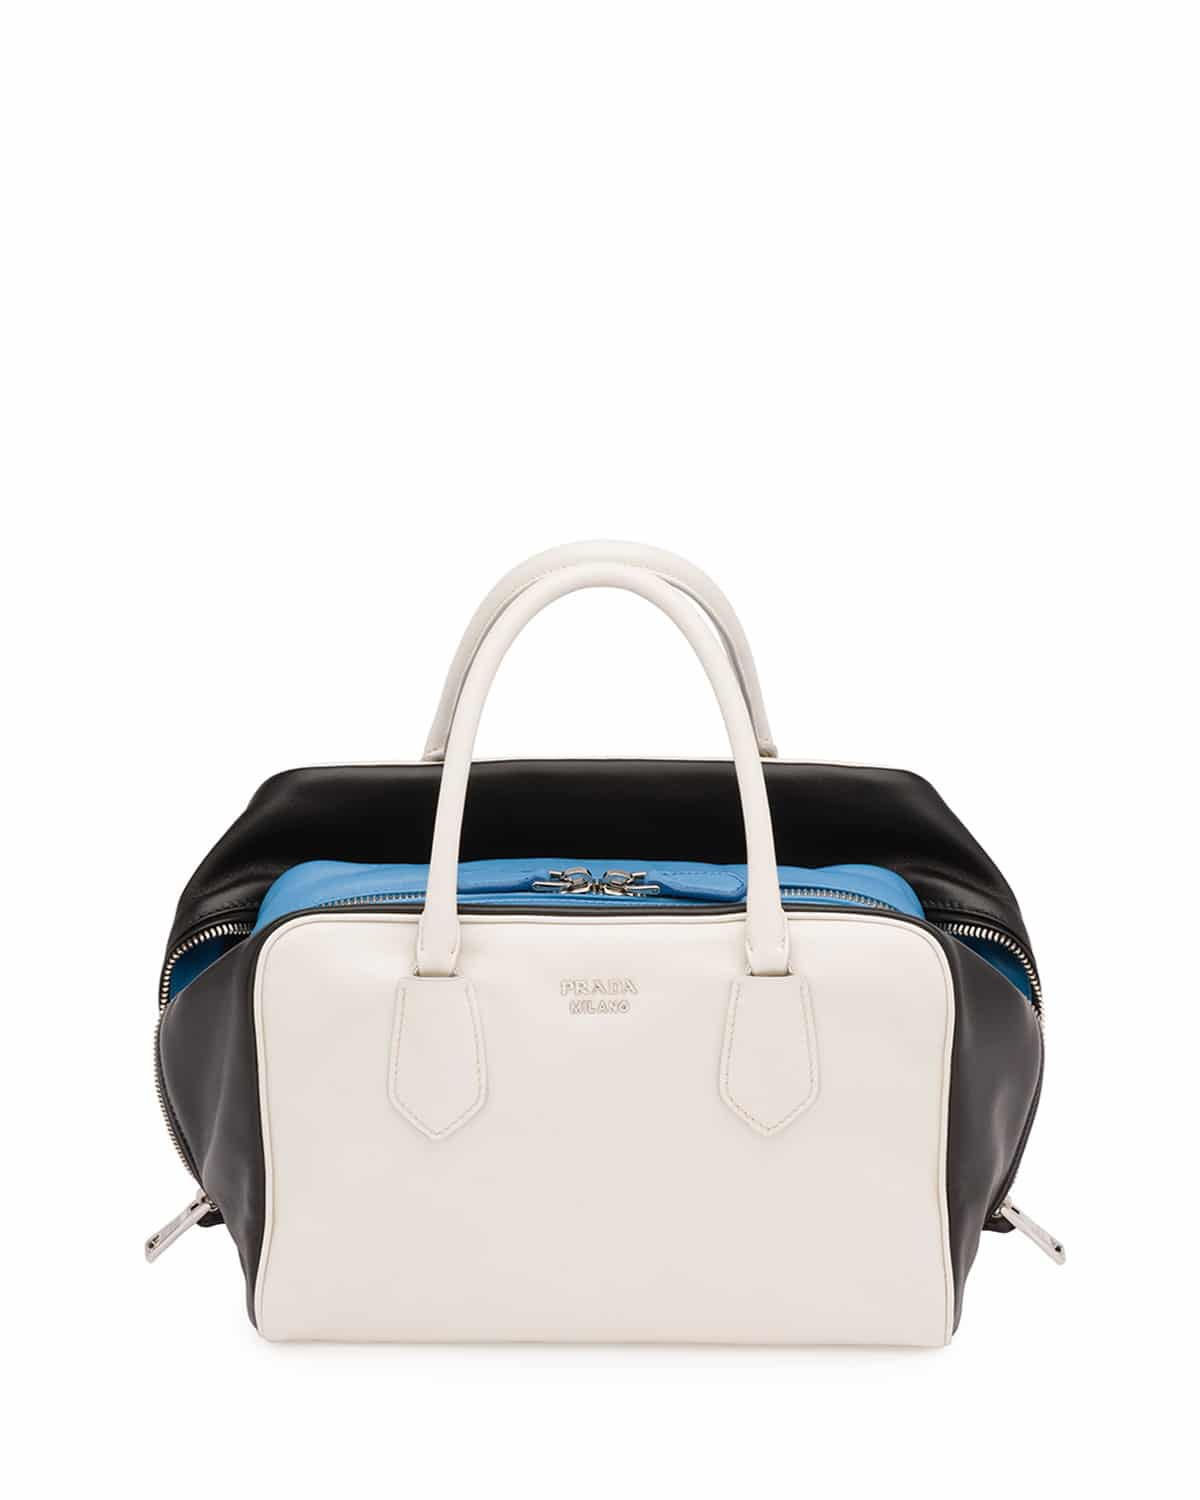 light blue prada bag